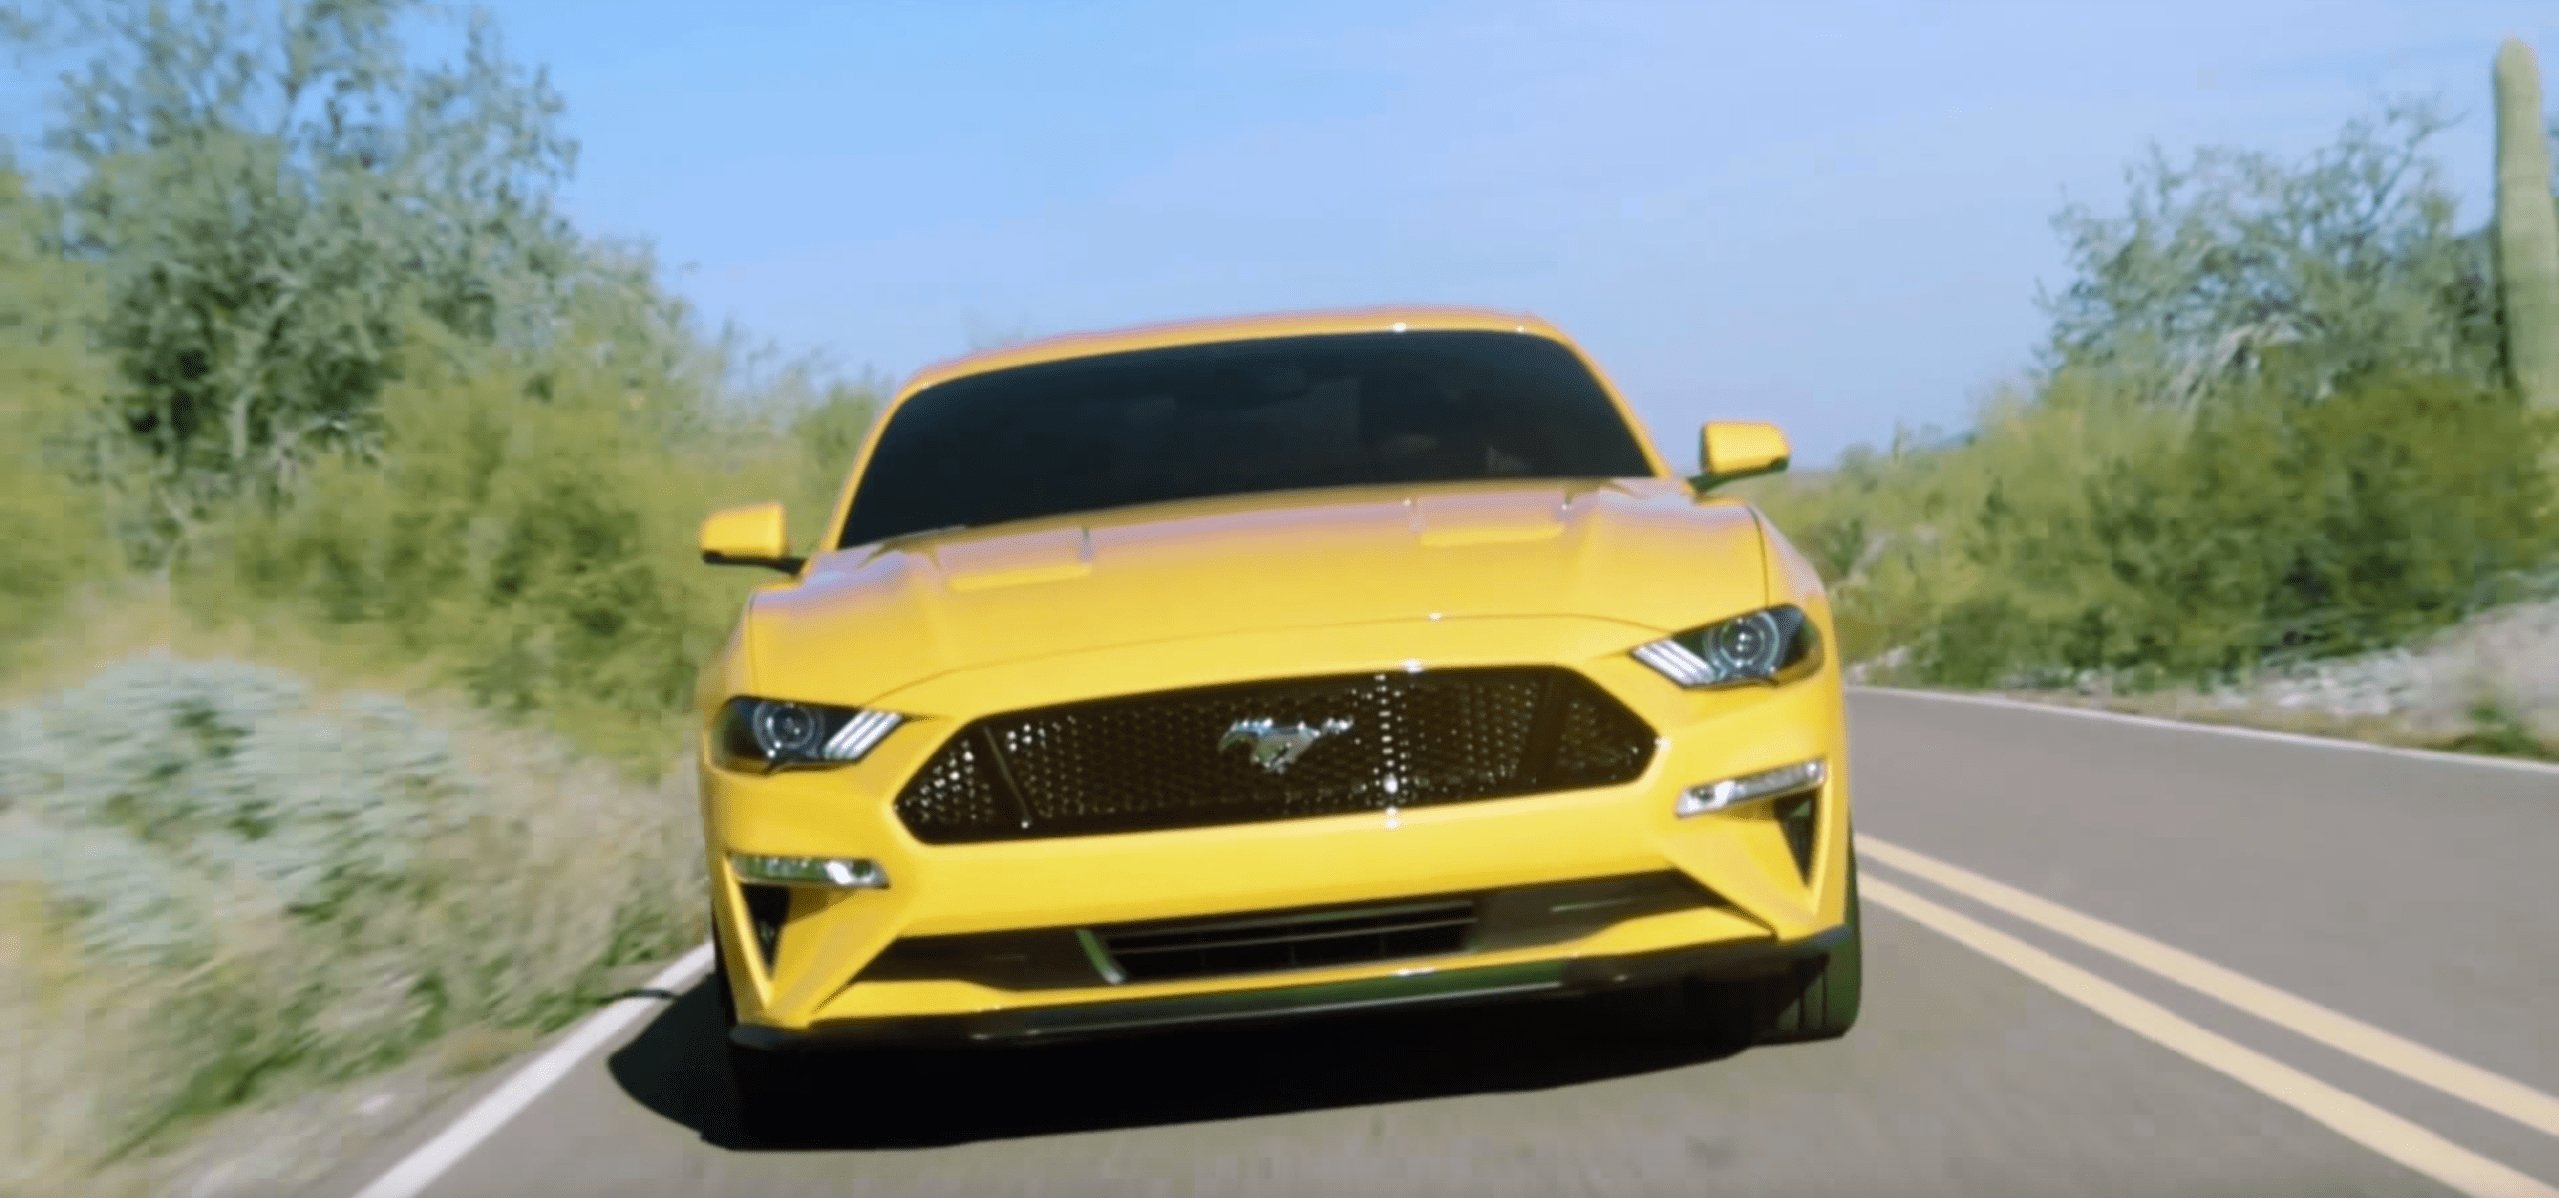 Latest 2018 Ford Mustang Update Leaked Photos 1 Of 6 Free Download